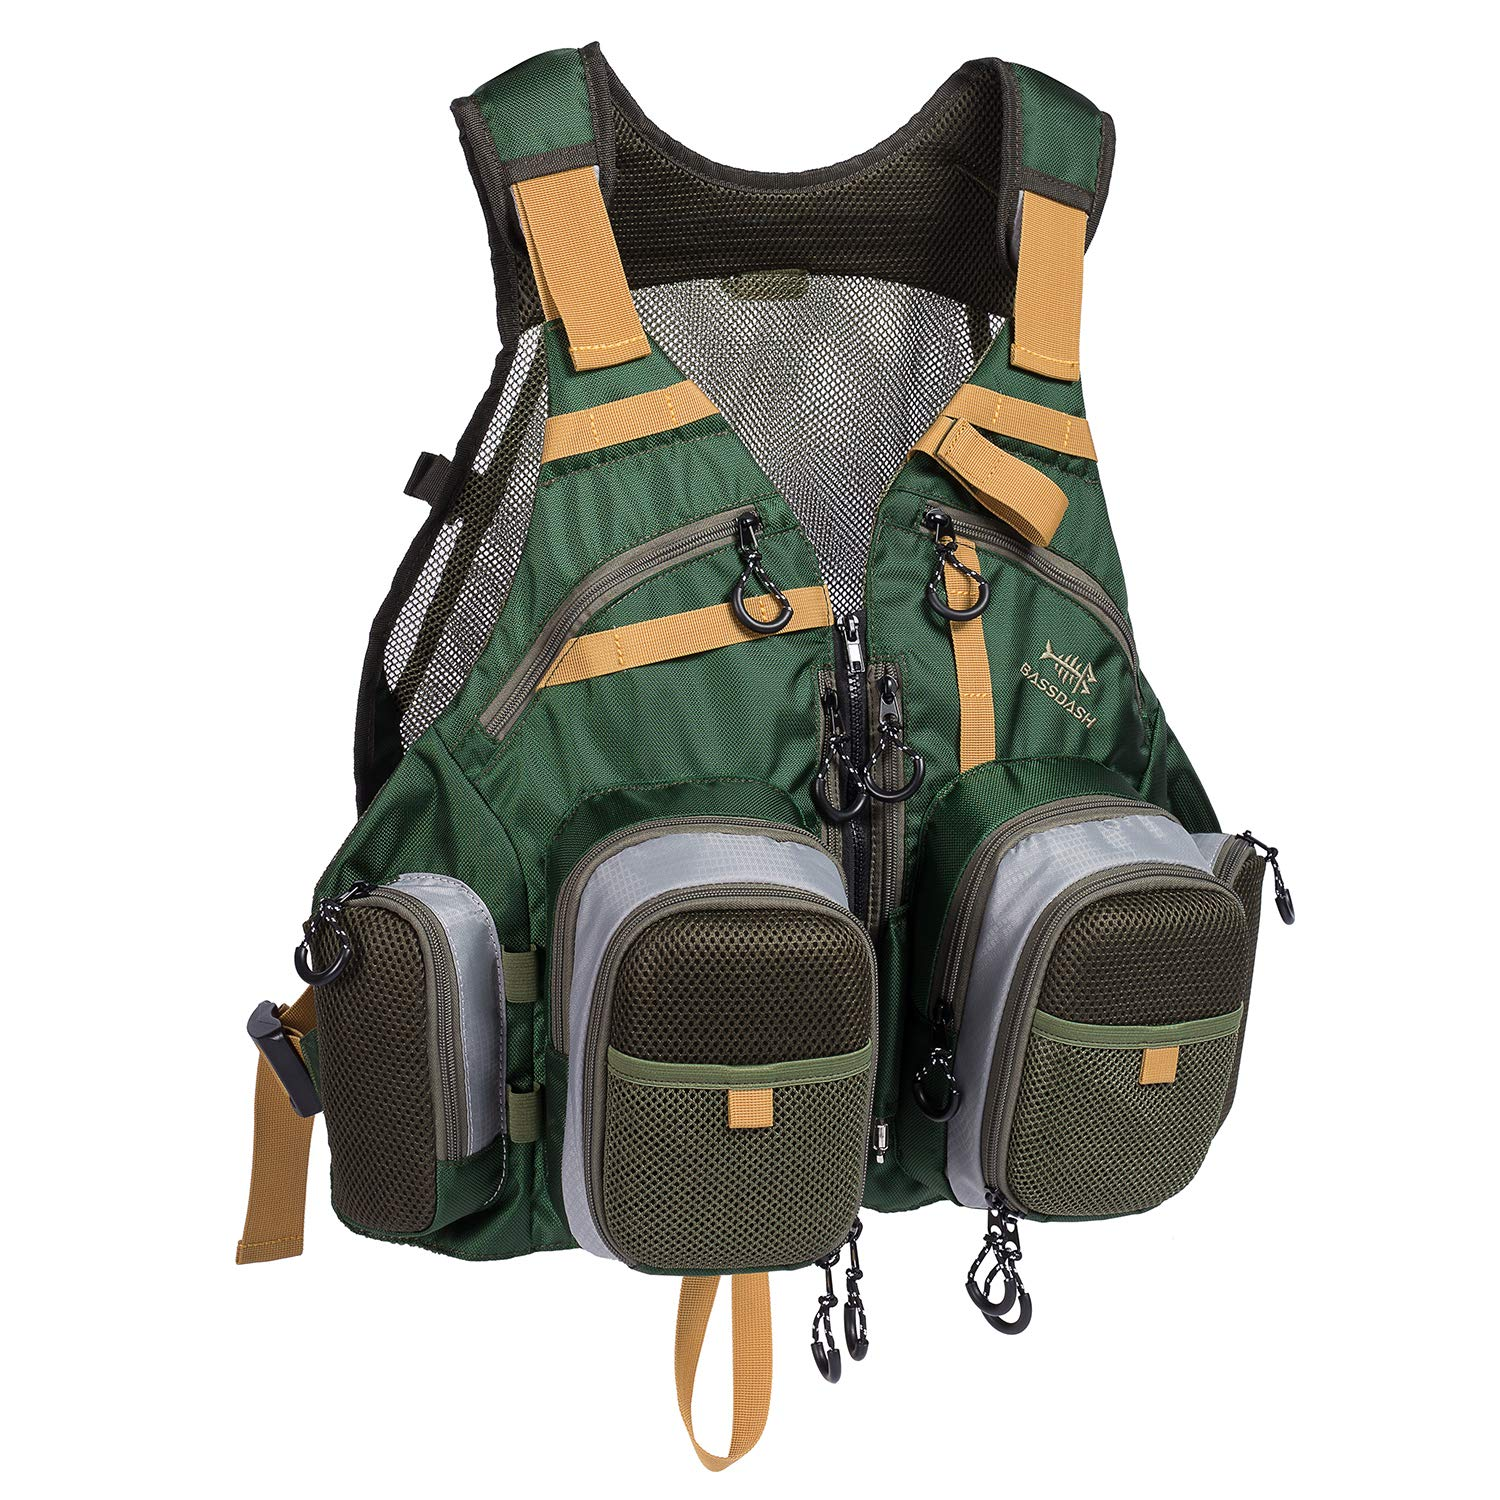 Bassdash Strap Fishing Vest Adjustable for Men and Women, for Fly Bass Fishing and Outdoor Activities (2019 New Blackish Green)